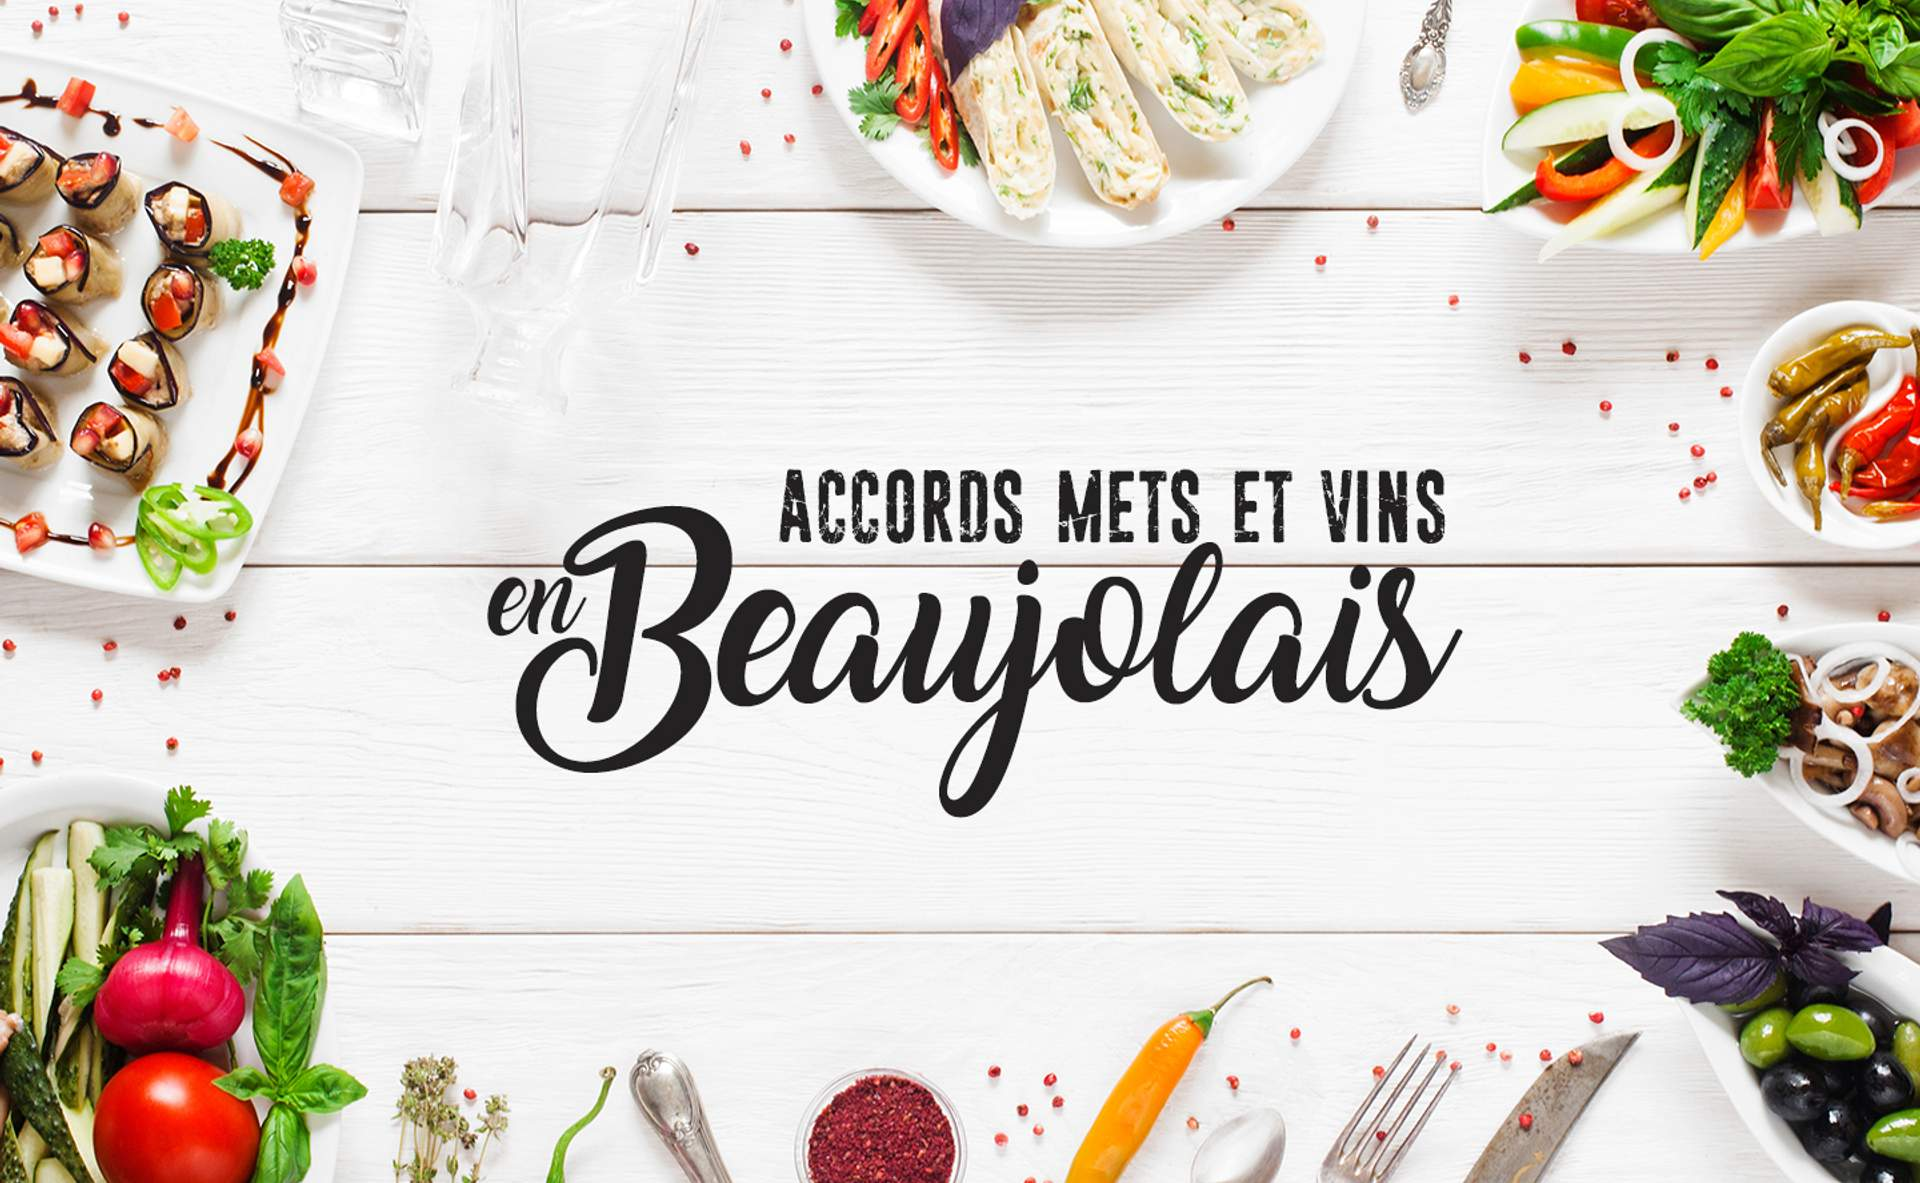 Accords mets et vin en Beaujolais